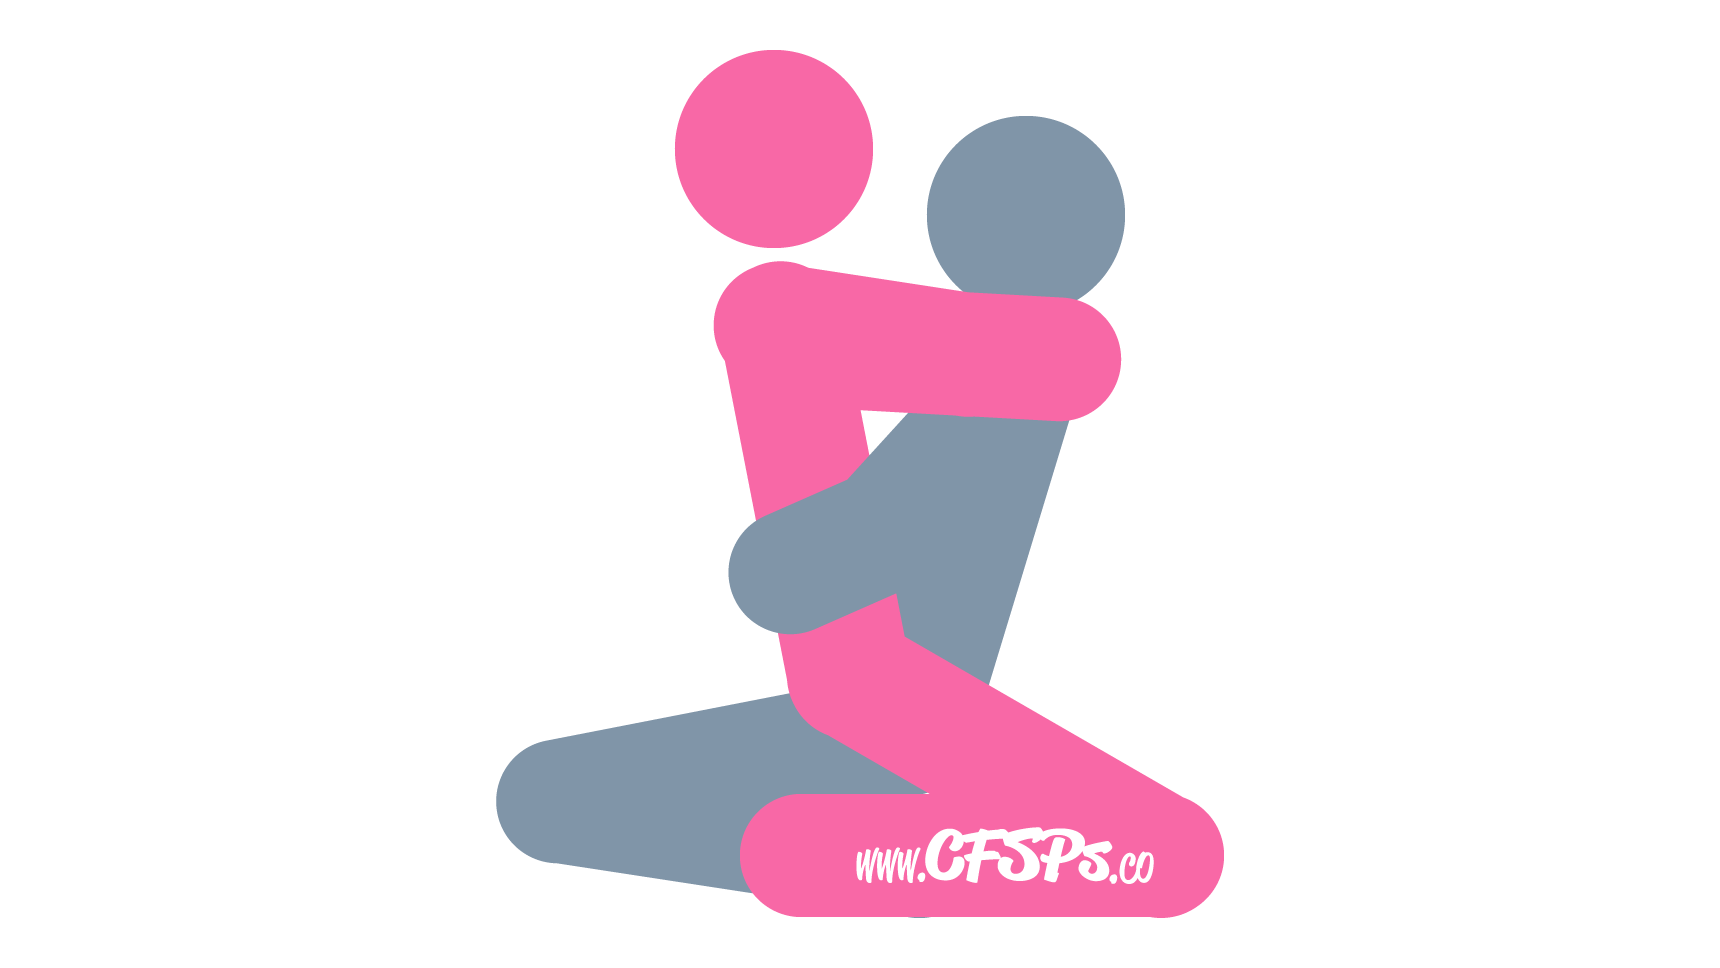 Oh, My!: Intimate, Kneeling Sex Position Illustration